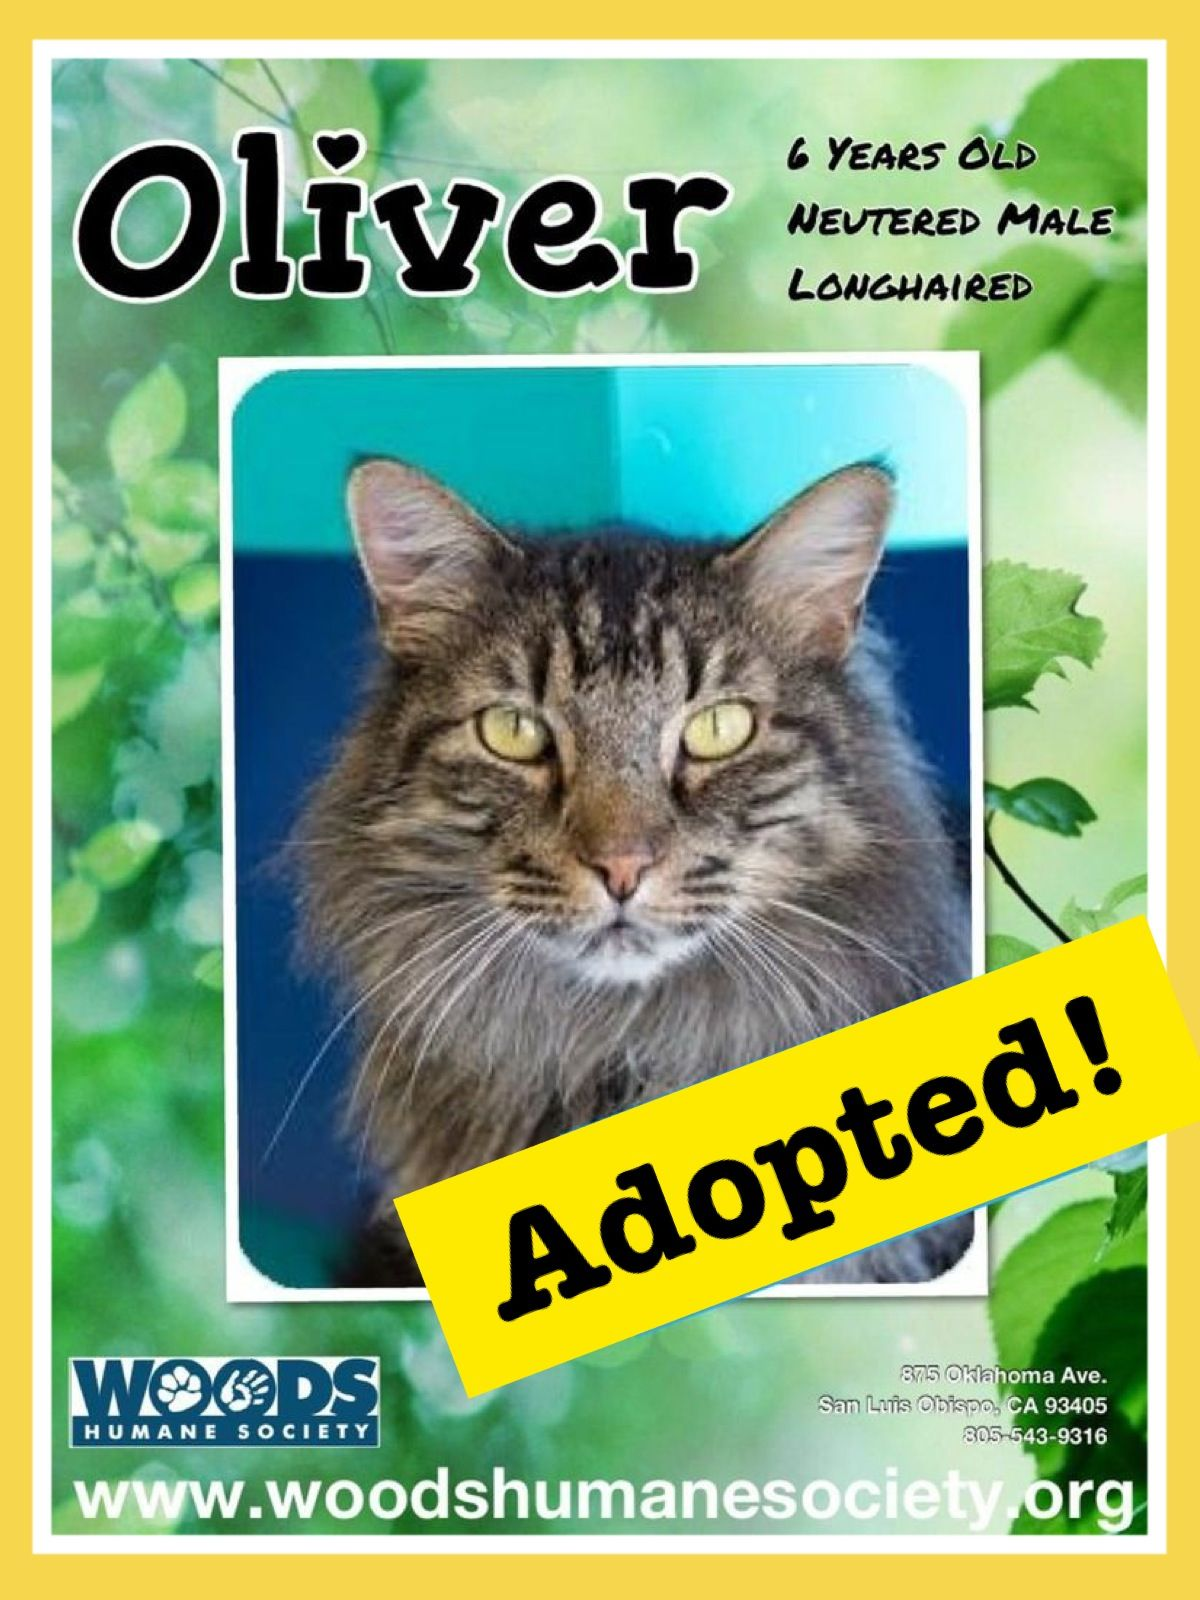 Adopted! (With images) Humane society, Cat shelter, Adoption